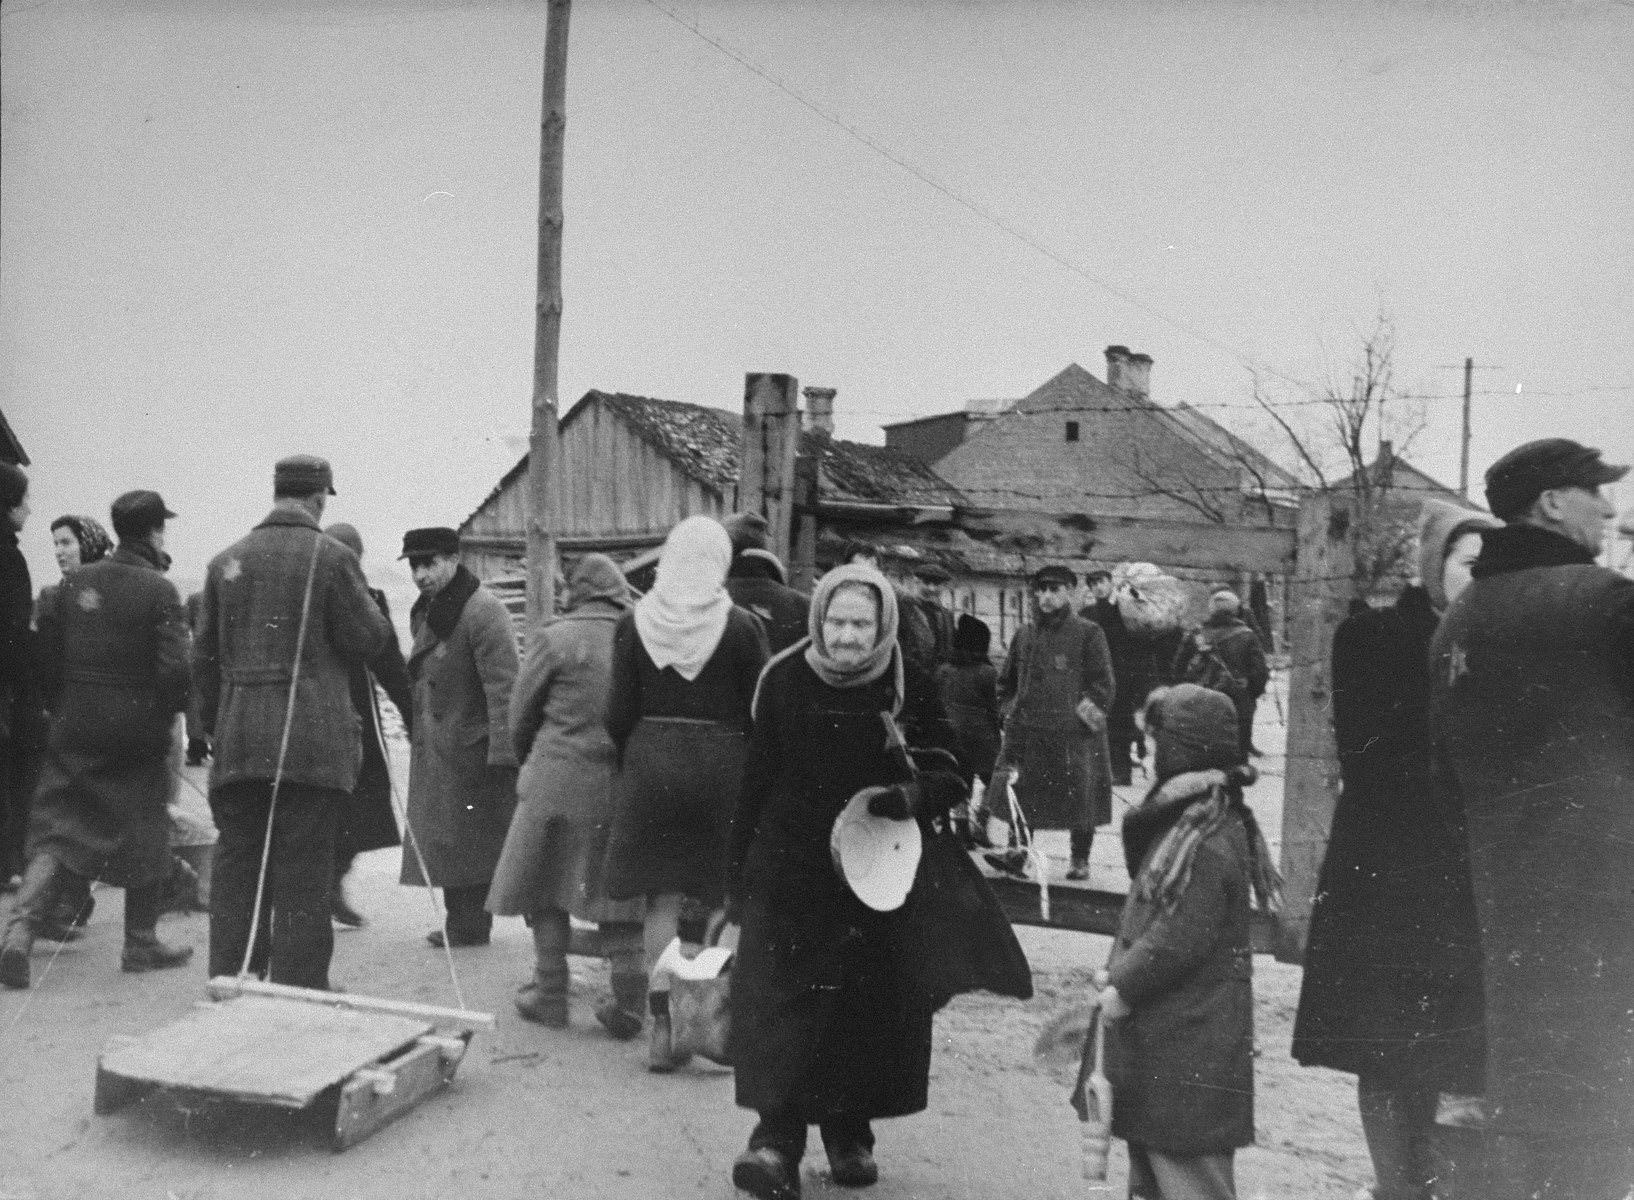 Jews move their household belongings to new quarters in the Kovno ghetto following a reduction in the size of the ghetto.  Among those pictured is Yitzhak Elhanan Rabinowich (far right), Jewish manager of the German labor office in the ghetto.  The elderly woman in the center is Sara Abramowitz.